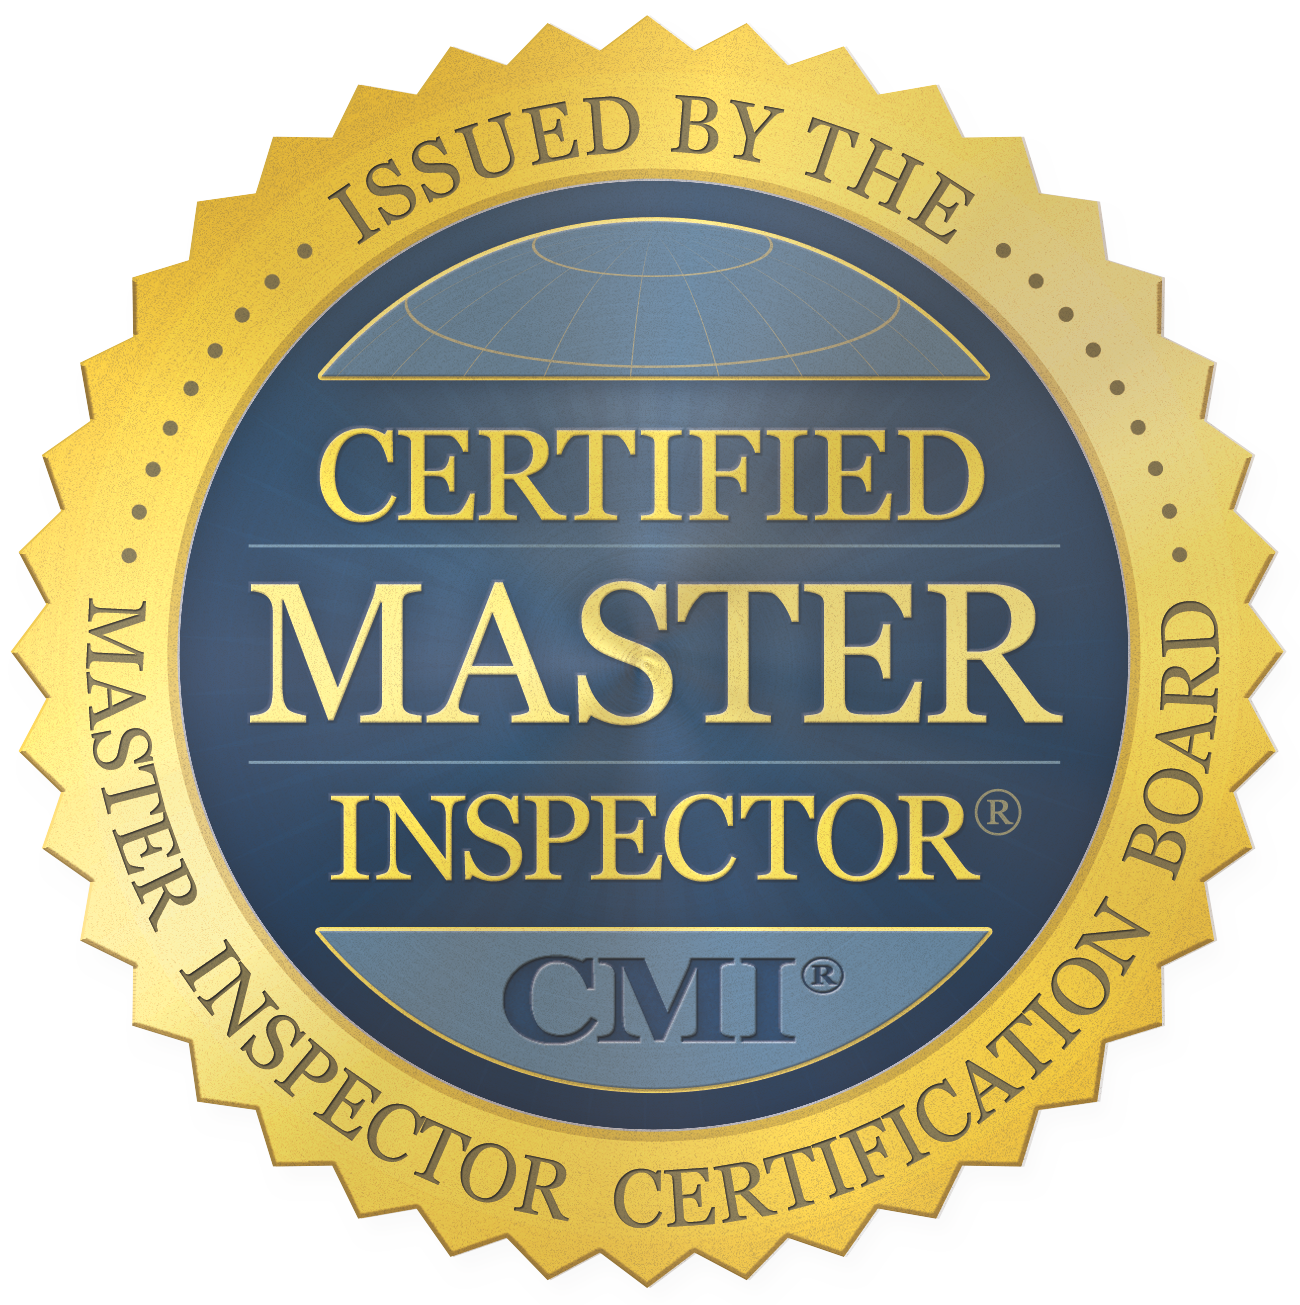 CMI - Master Certified Inspector certification